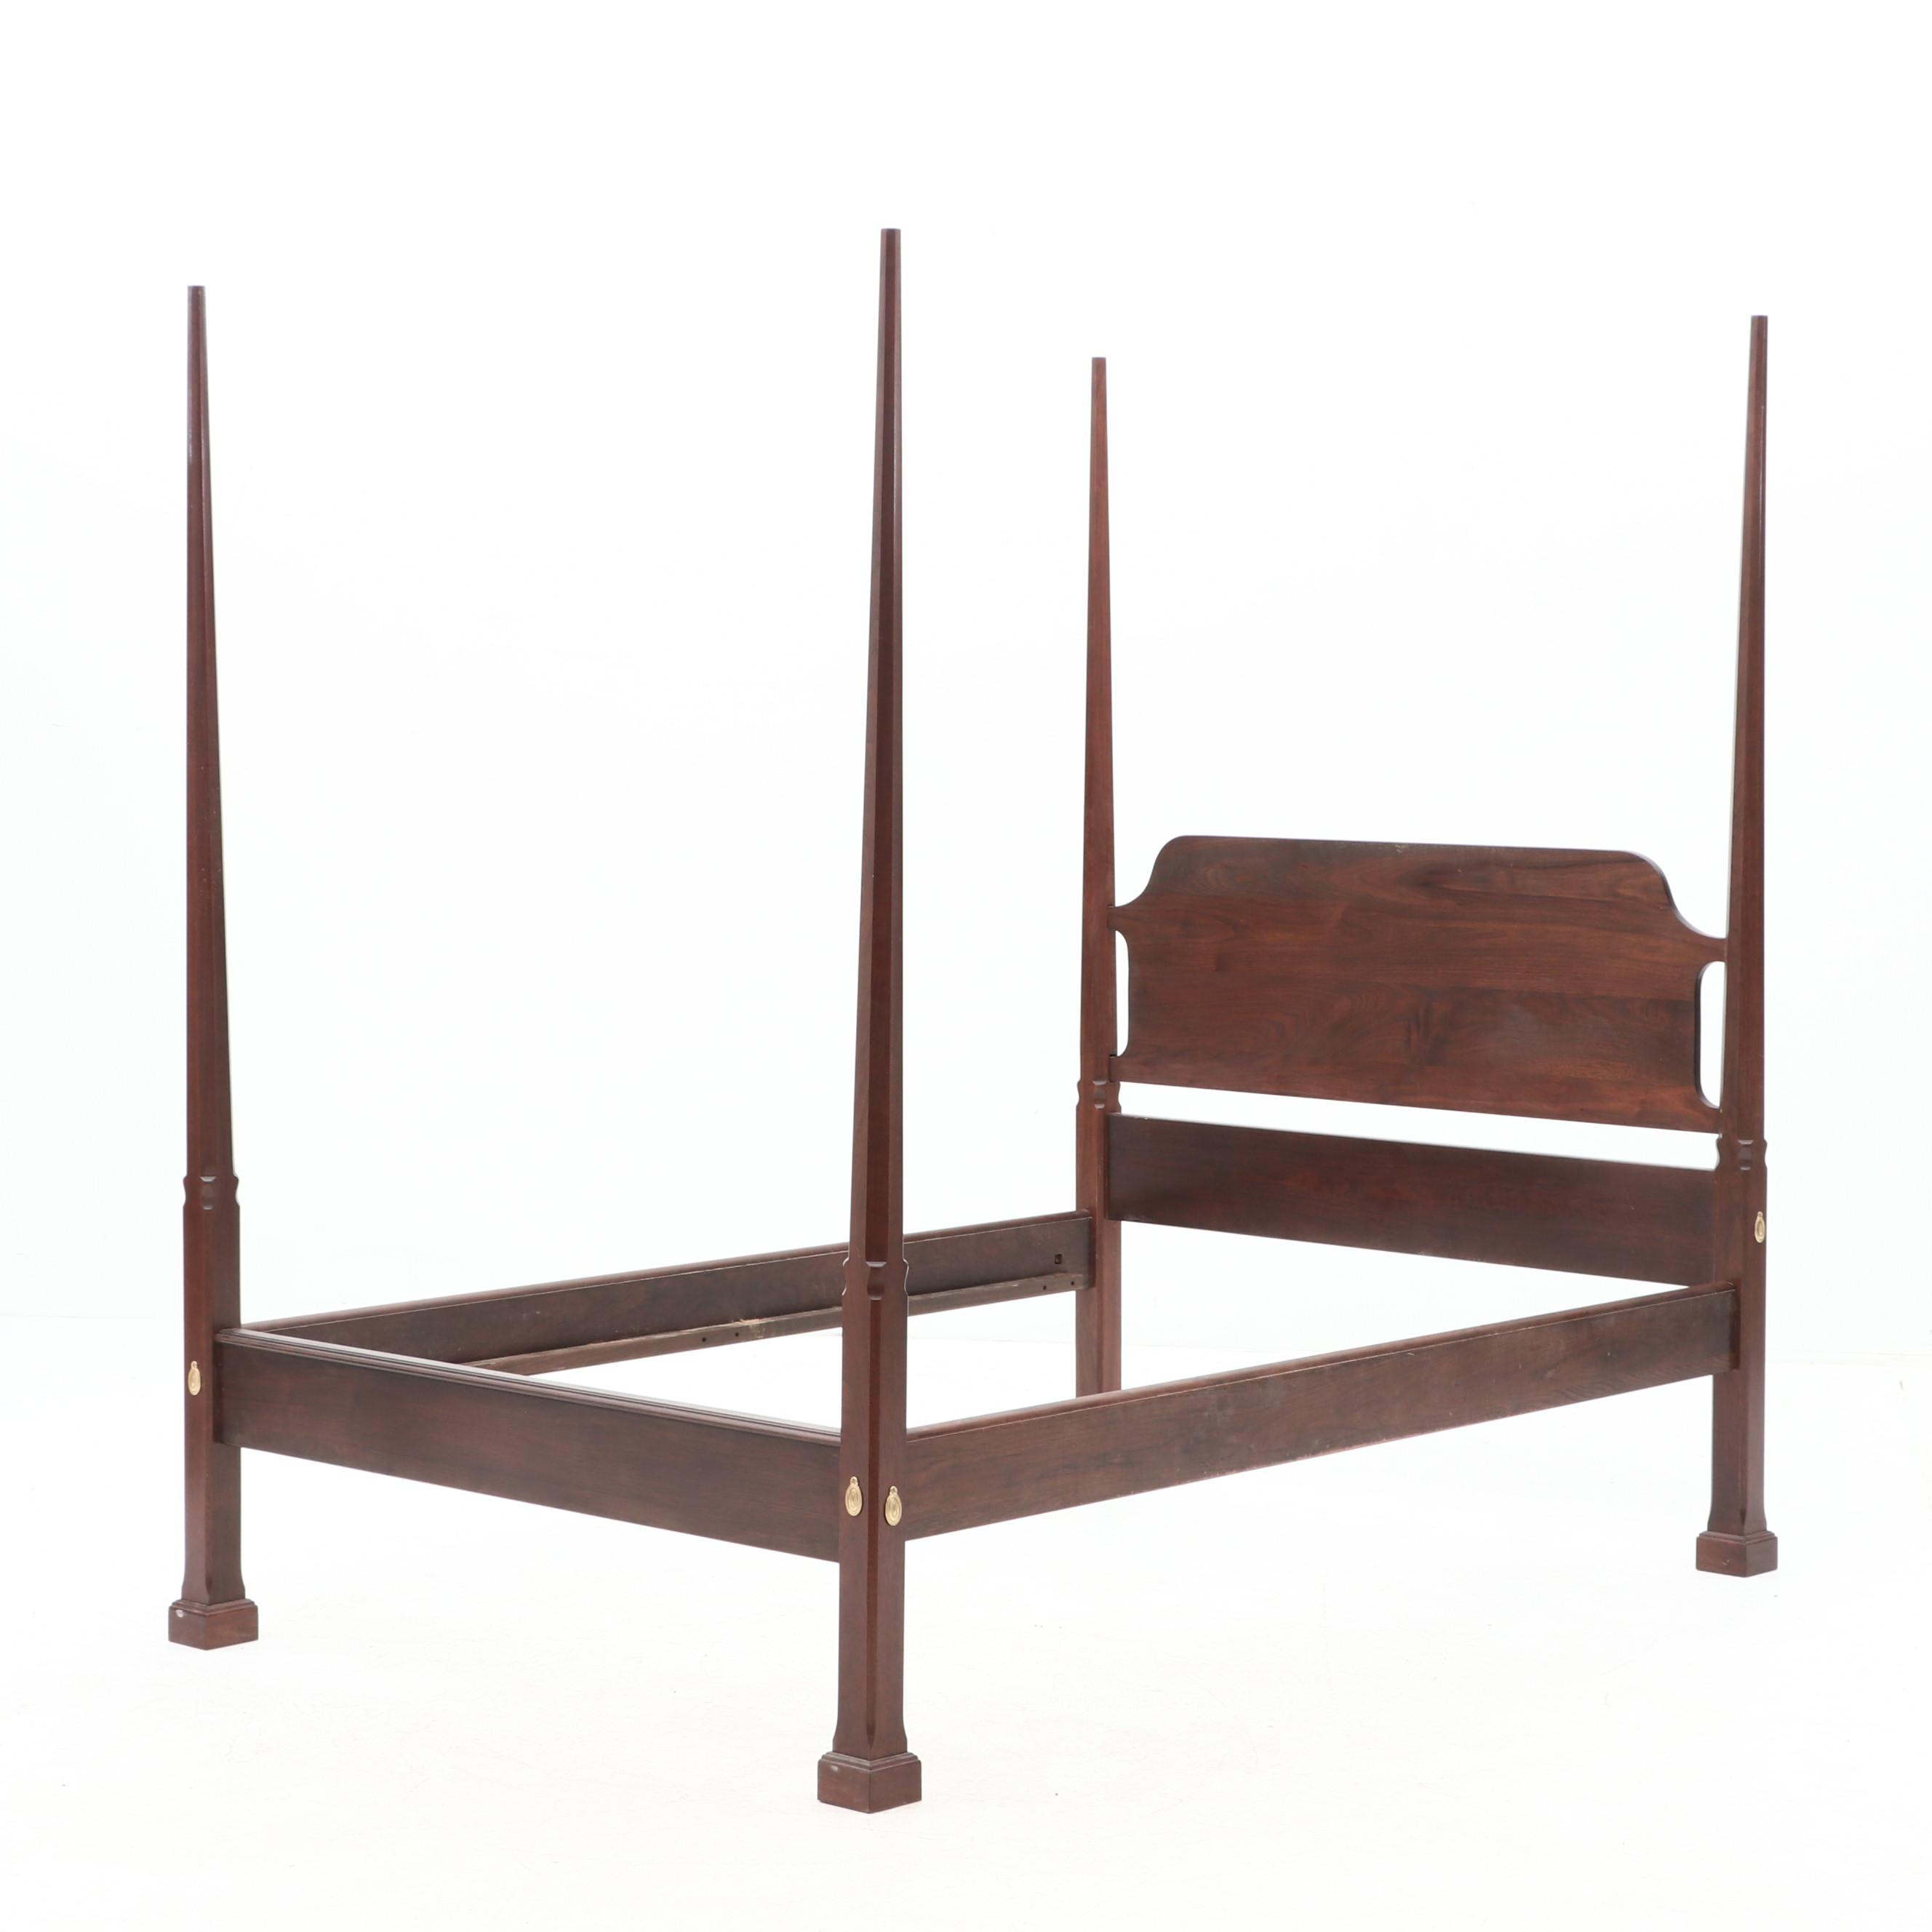 Walnut Pencil Post Bed with Rails